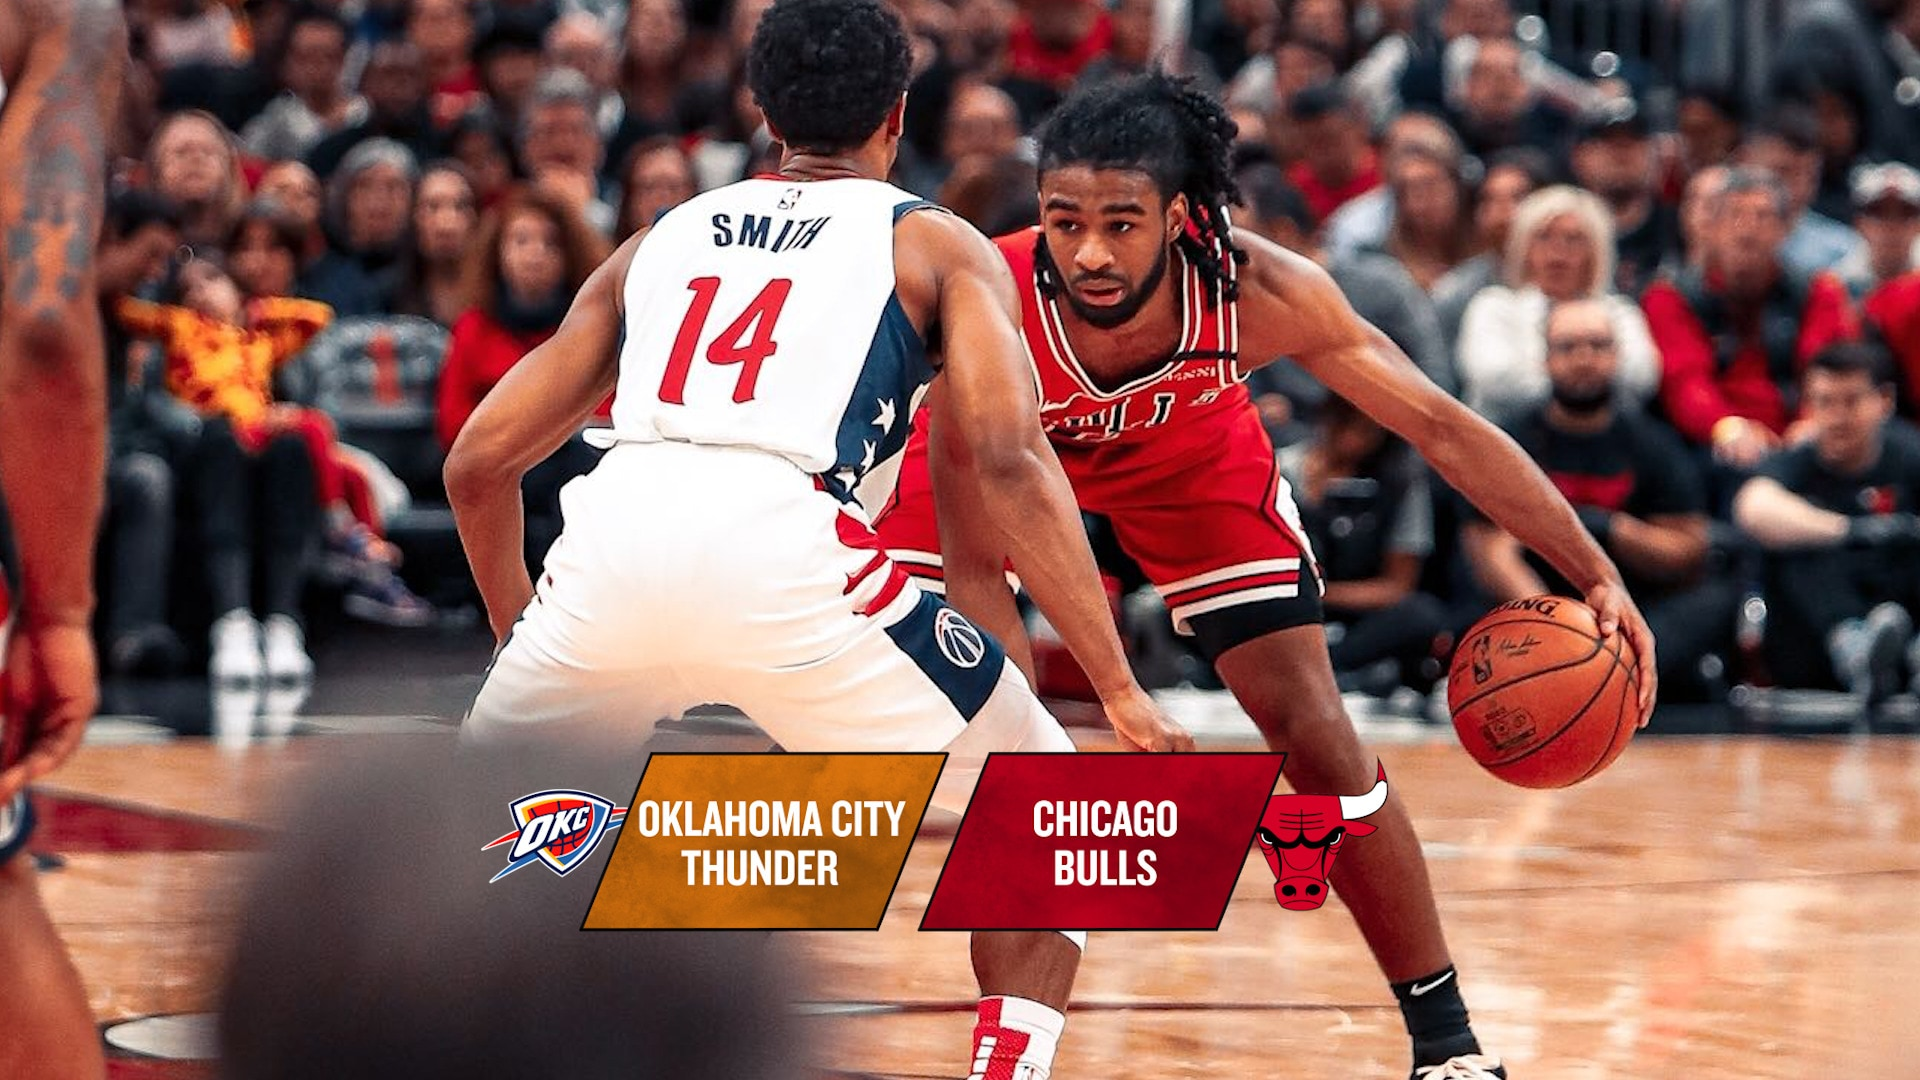 BullsTV Preview: Bulls vs. Thunder - 2.25.20